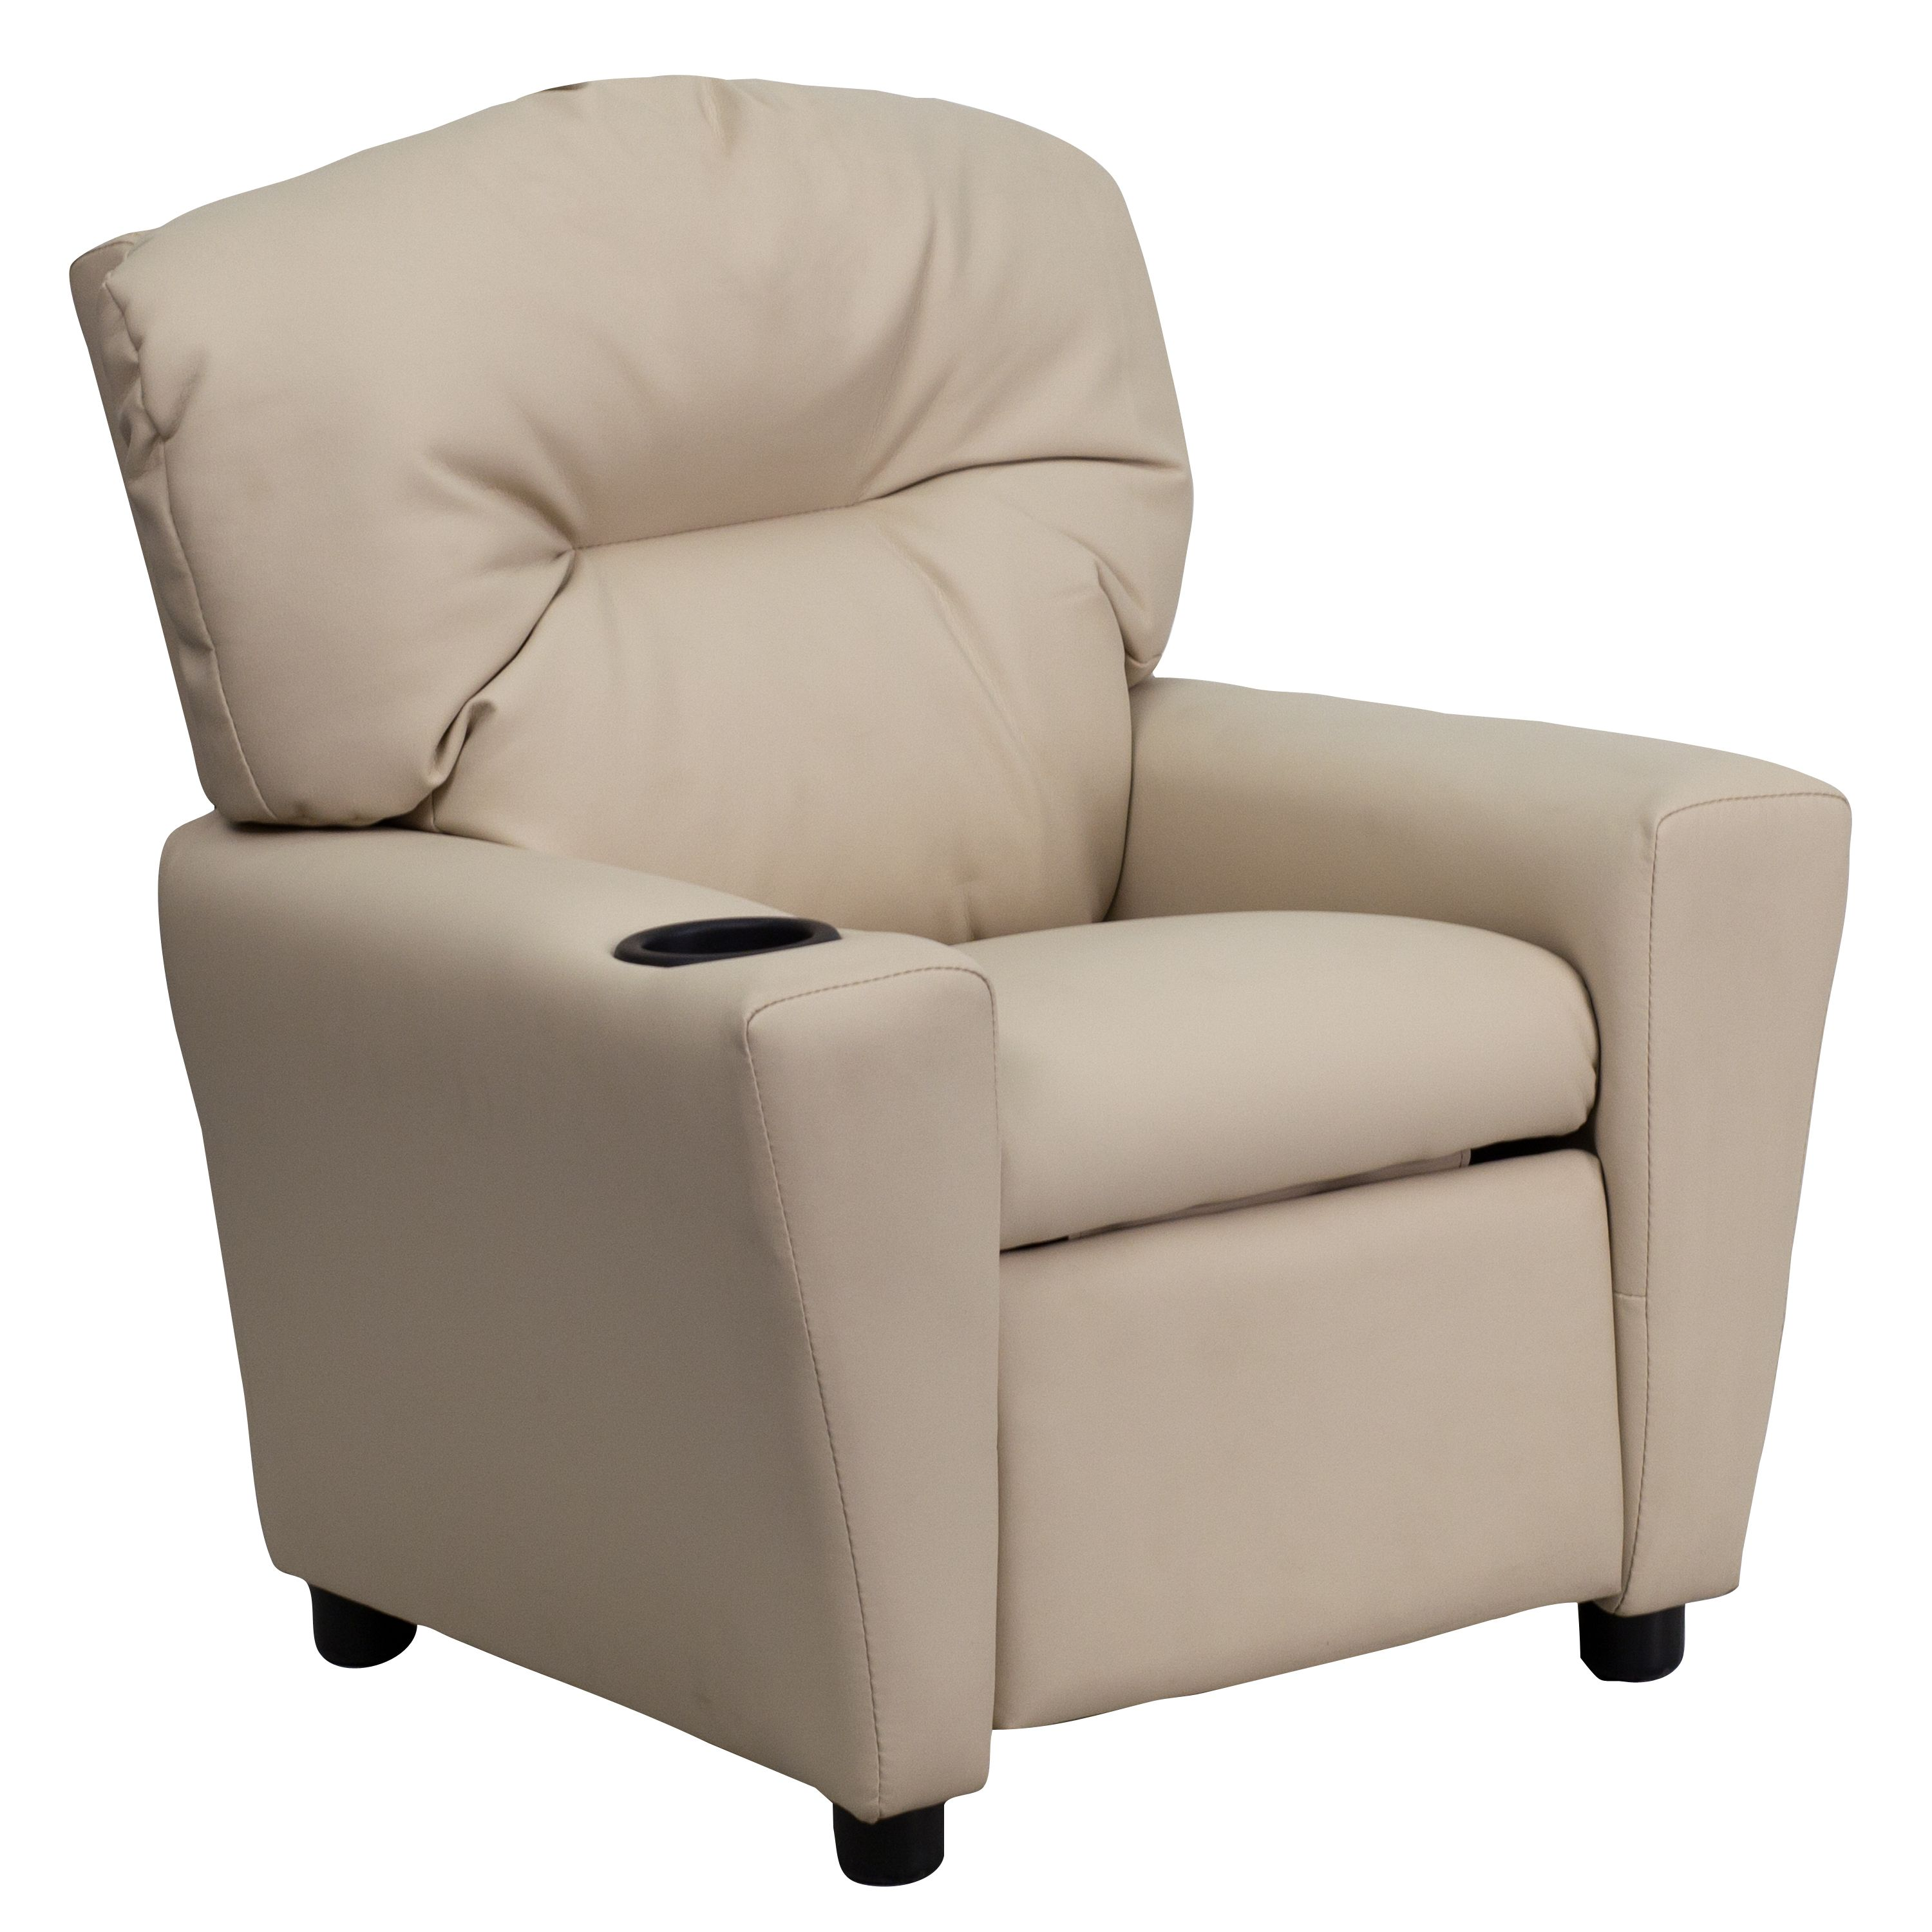 Younger Kids Would Love This. Flash Furniture Contemporary Beige Vinyl Kids  Recliner With Cup Holder [Misc.